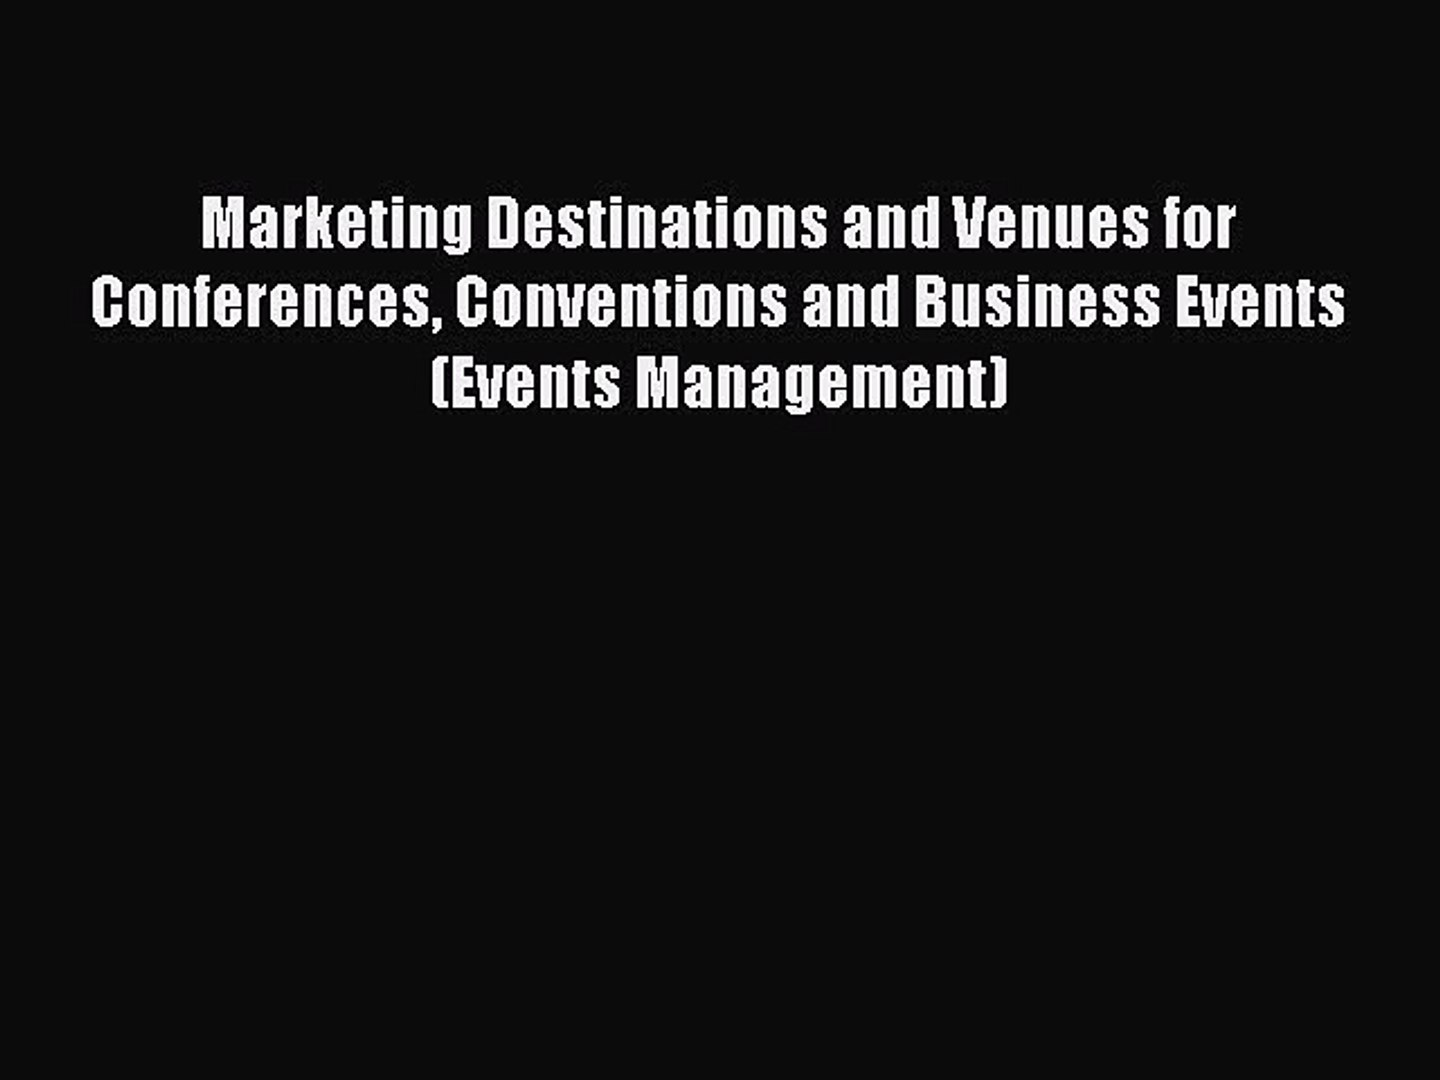 READbookMarketing Destinations and Venues for Conferences Conventions and Business Events (Events